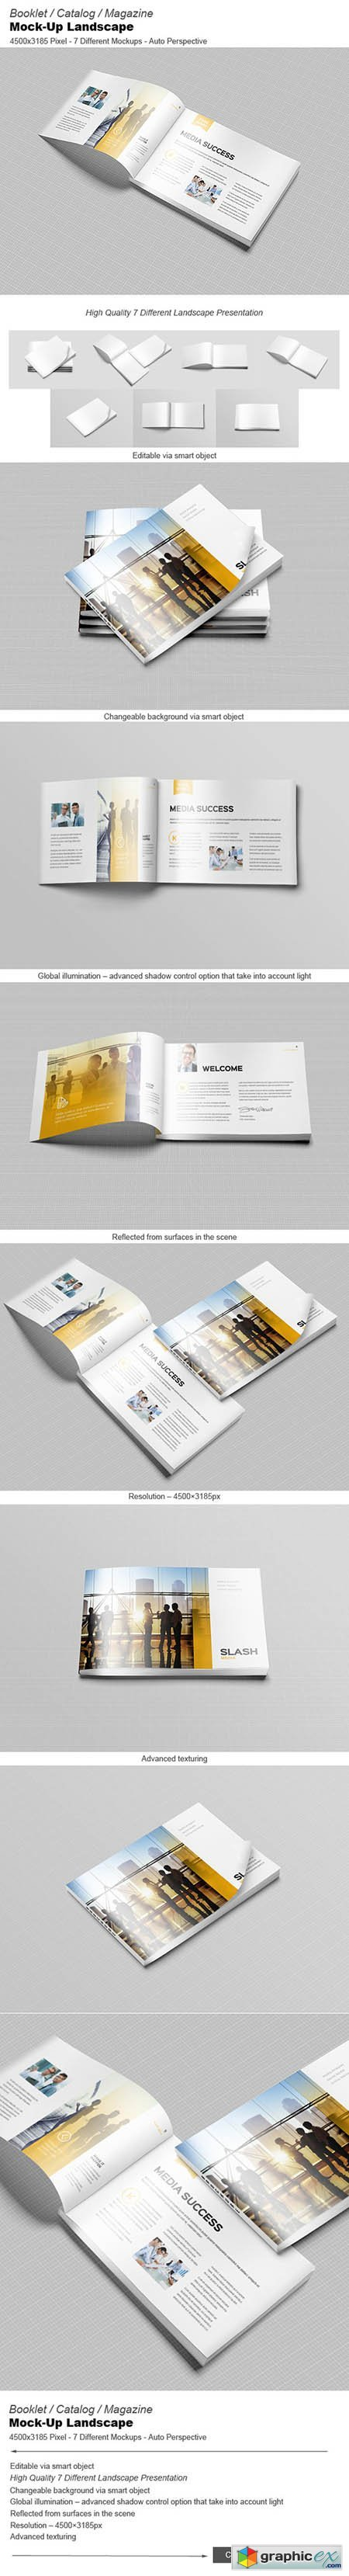 Booklet / Catalog / Mock-Ups 348924